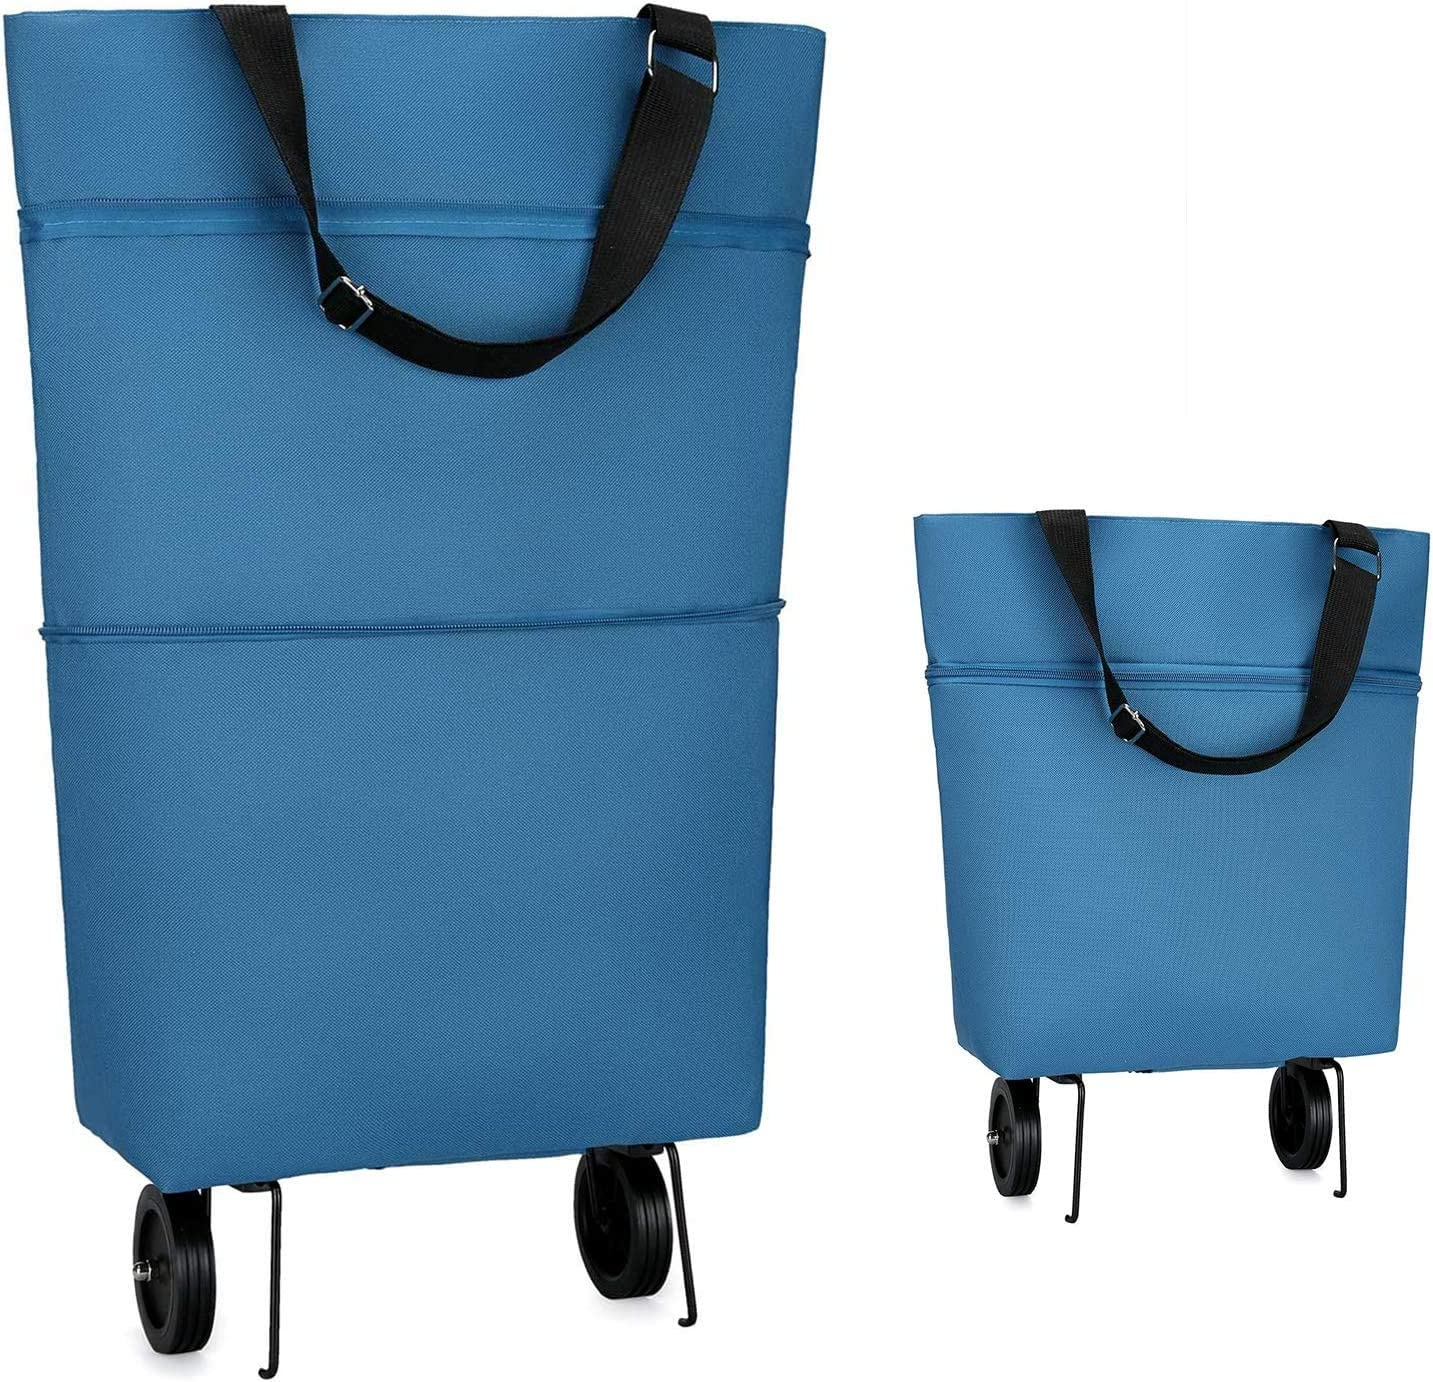 Reusable Grocery Bags with Wheels COCOCKA Foldable Shopping Bags Large Capacity Produce Bags for Grocery for Shopping,Fruits,Vegetables,Grocery Cart Waterproof interior(Blue)